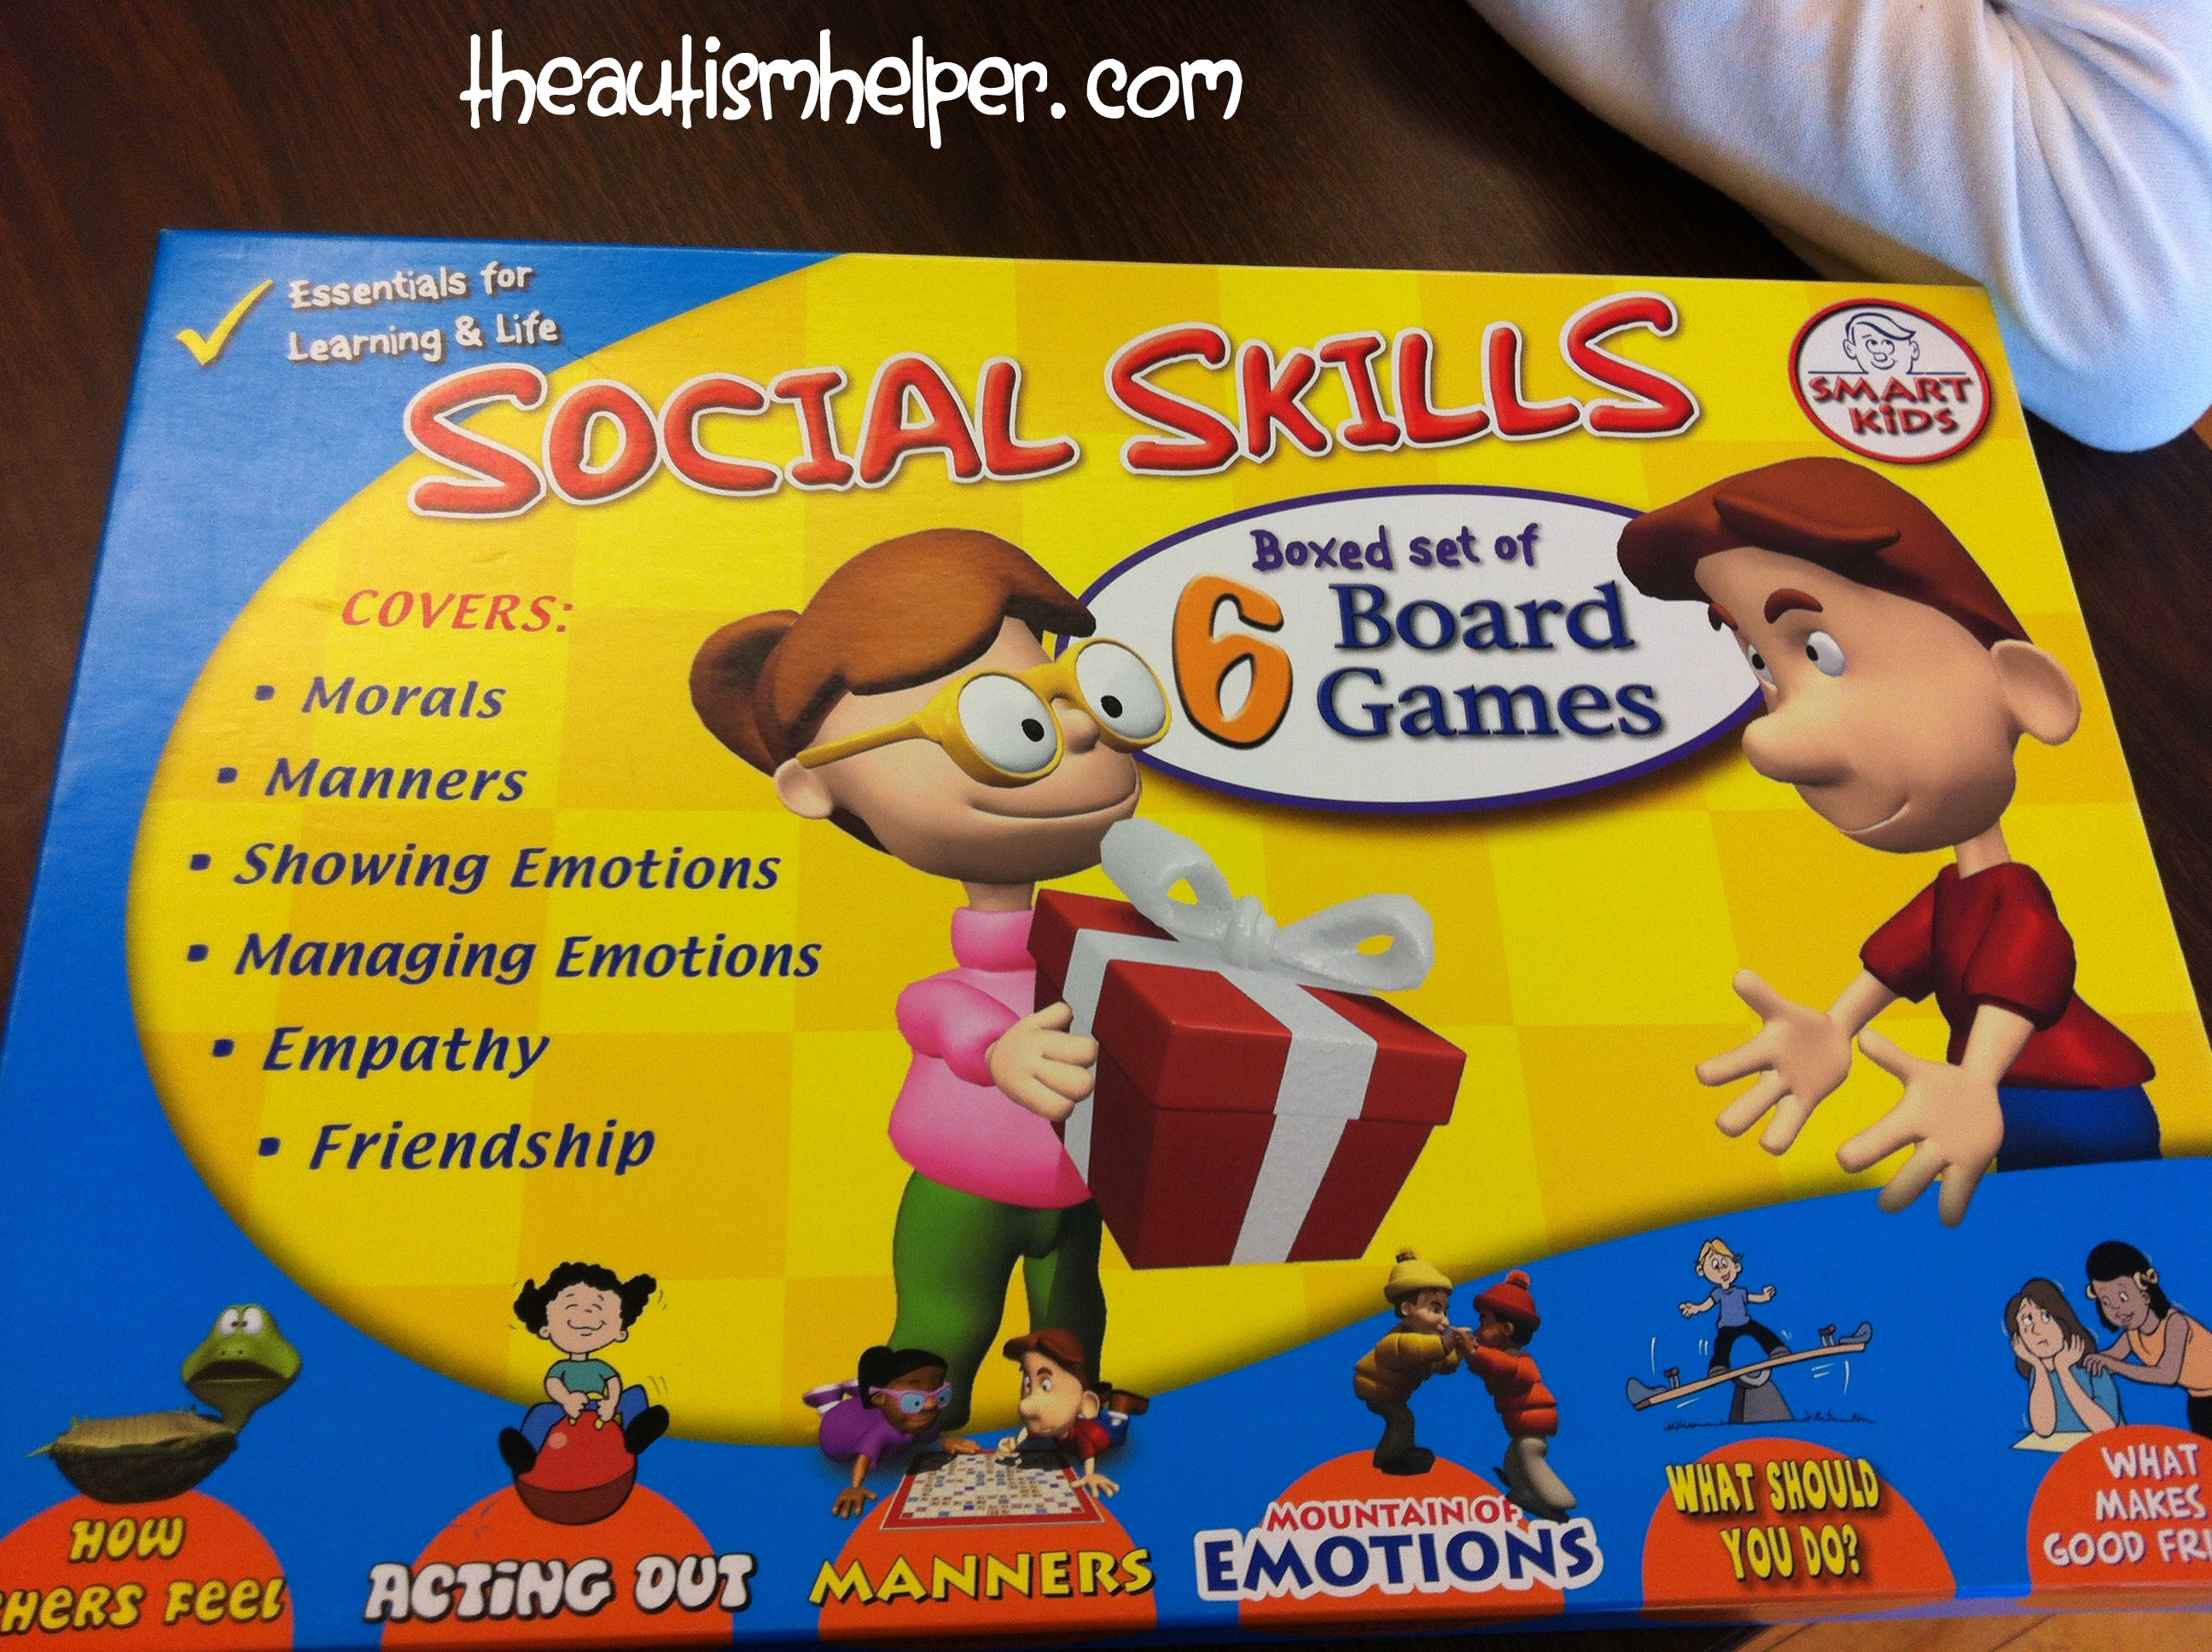 More Great Social Skill Games